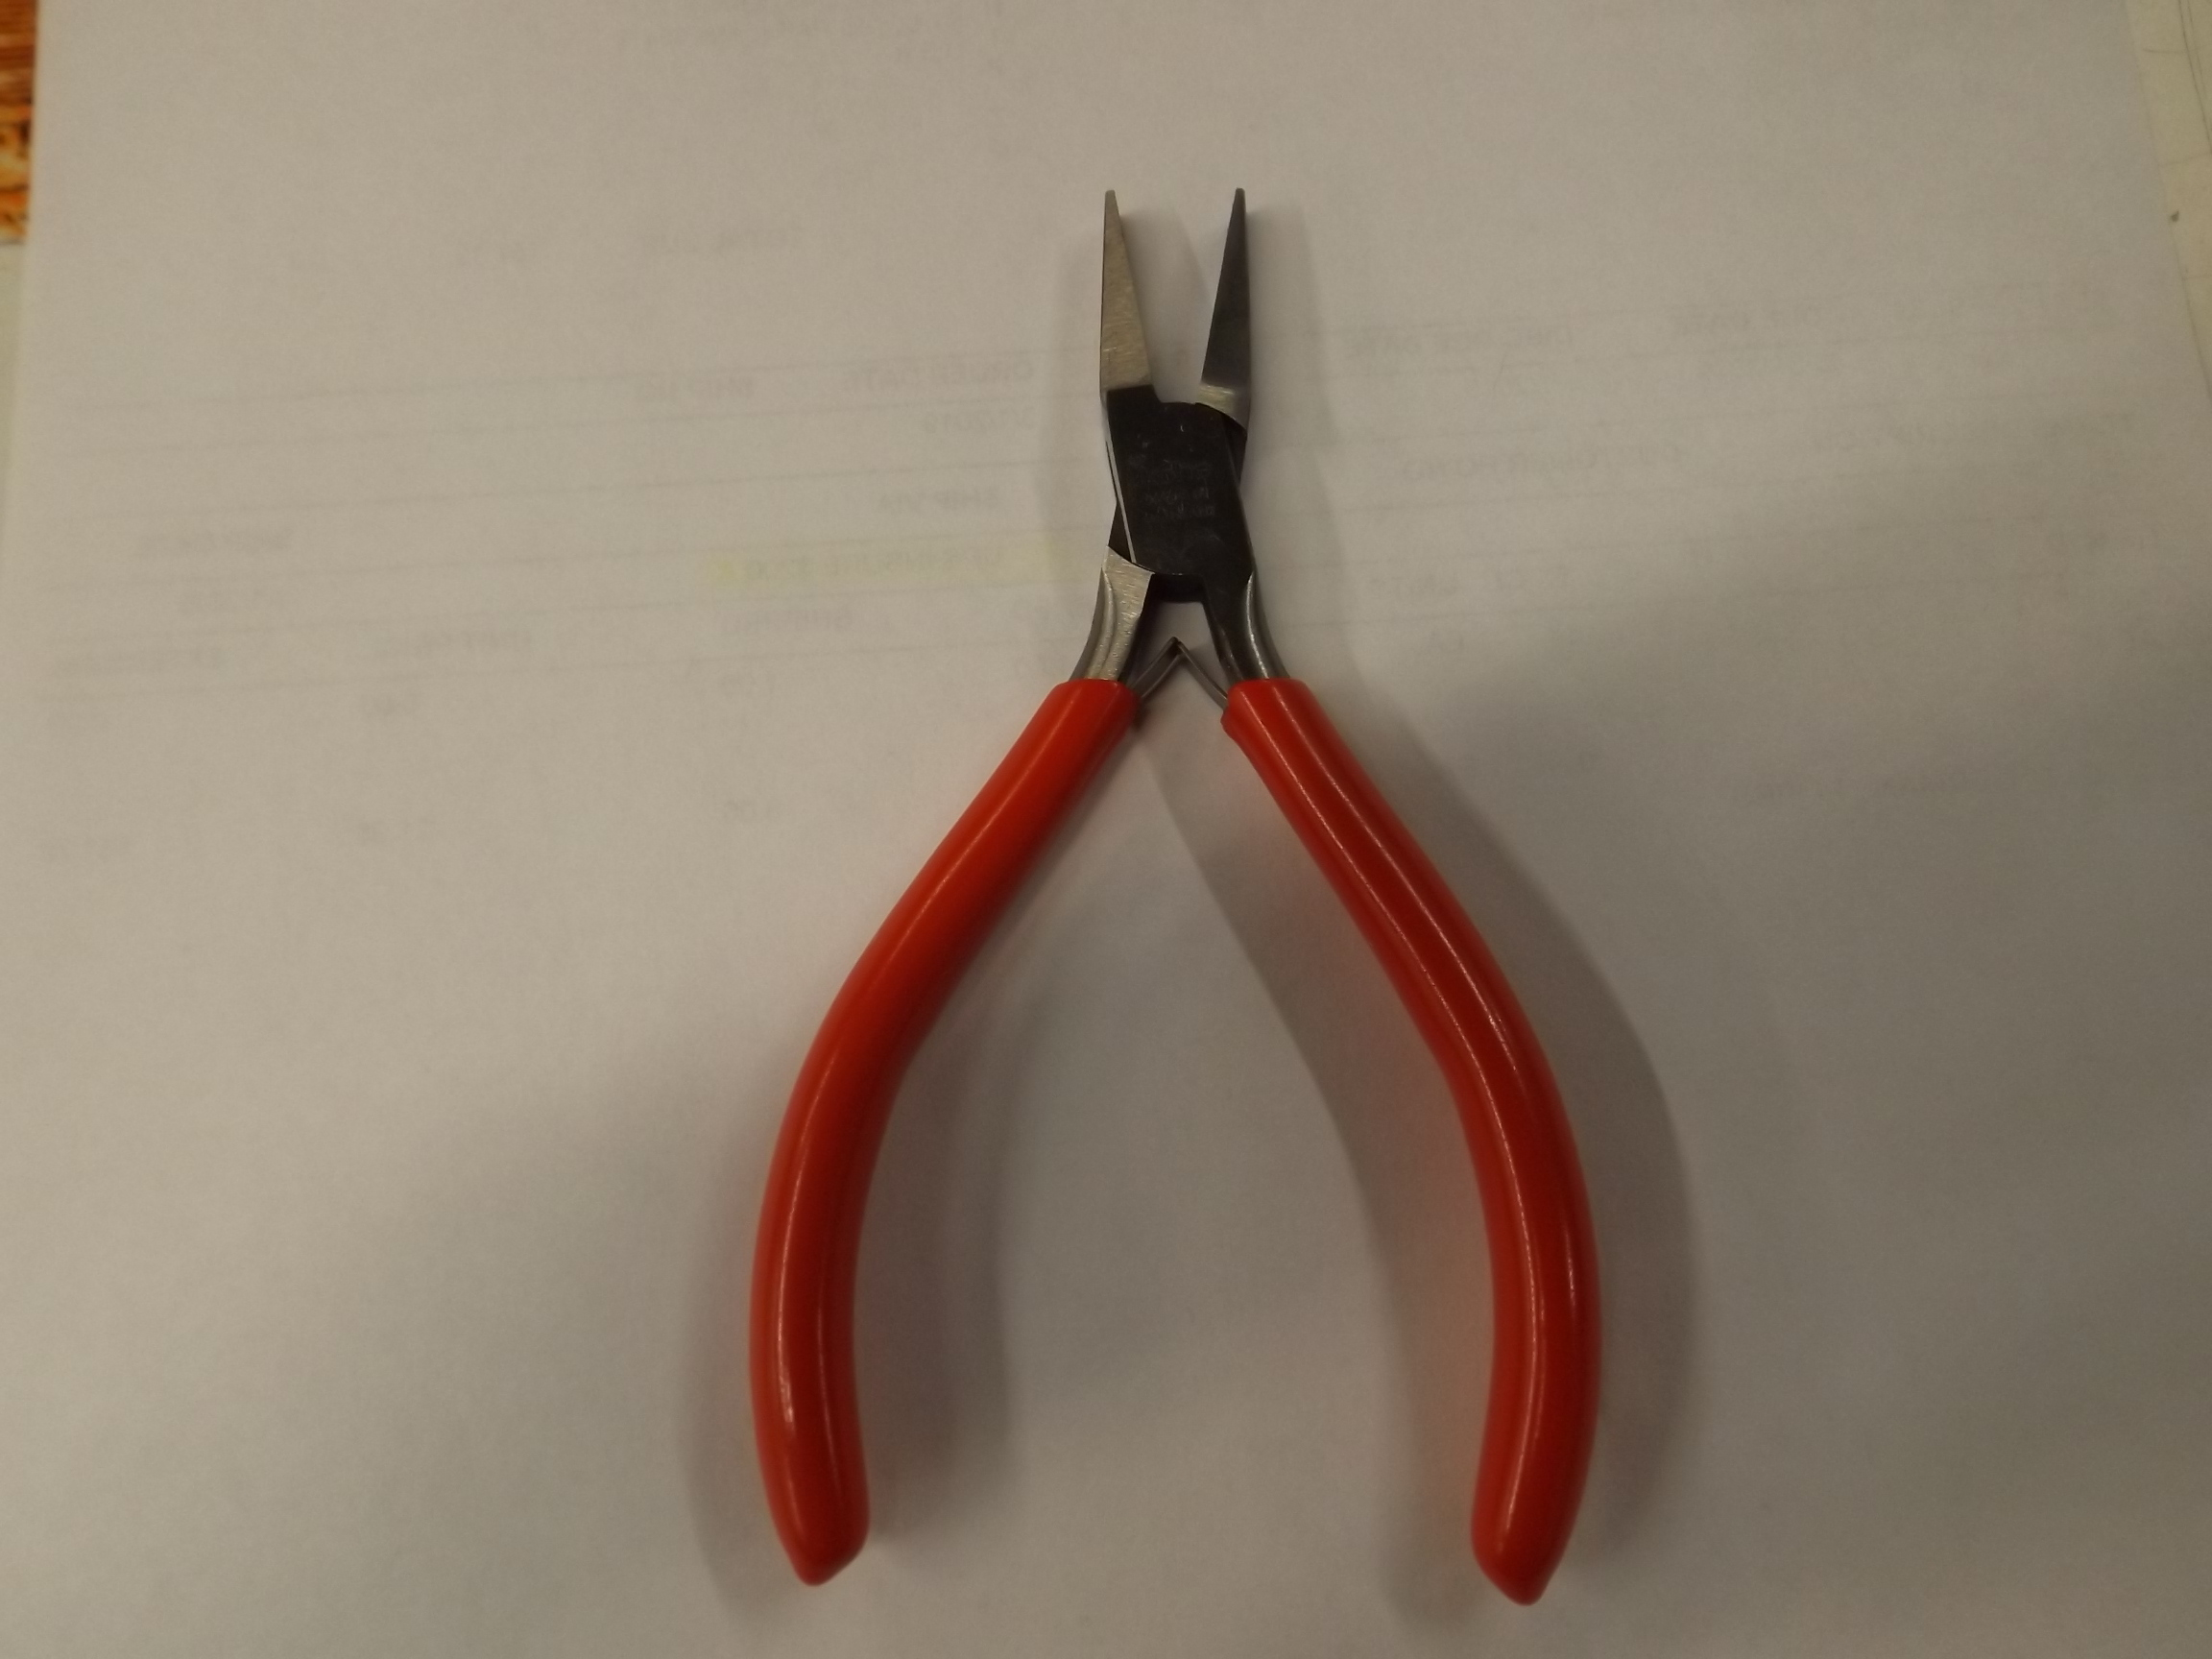 "PL1156 New! Flat Nose Pliers with Serrated Jaws-5""- Ikohe # 41-1156"